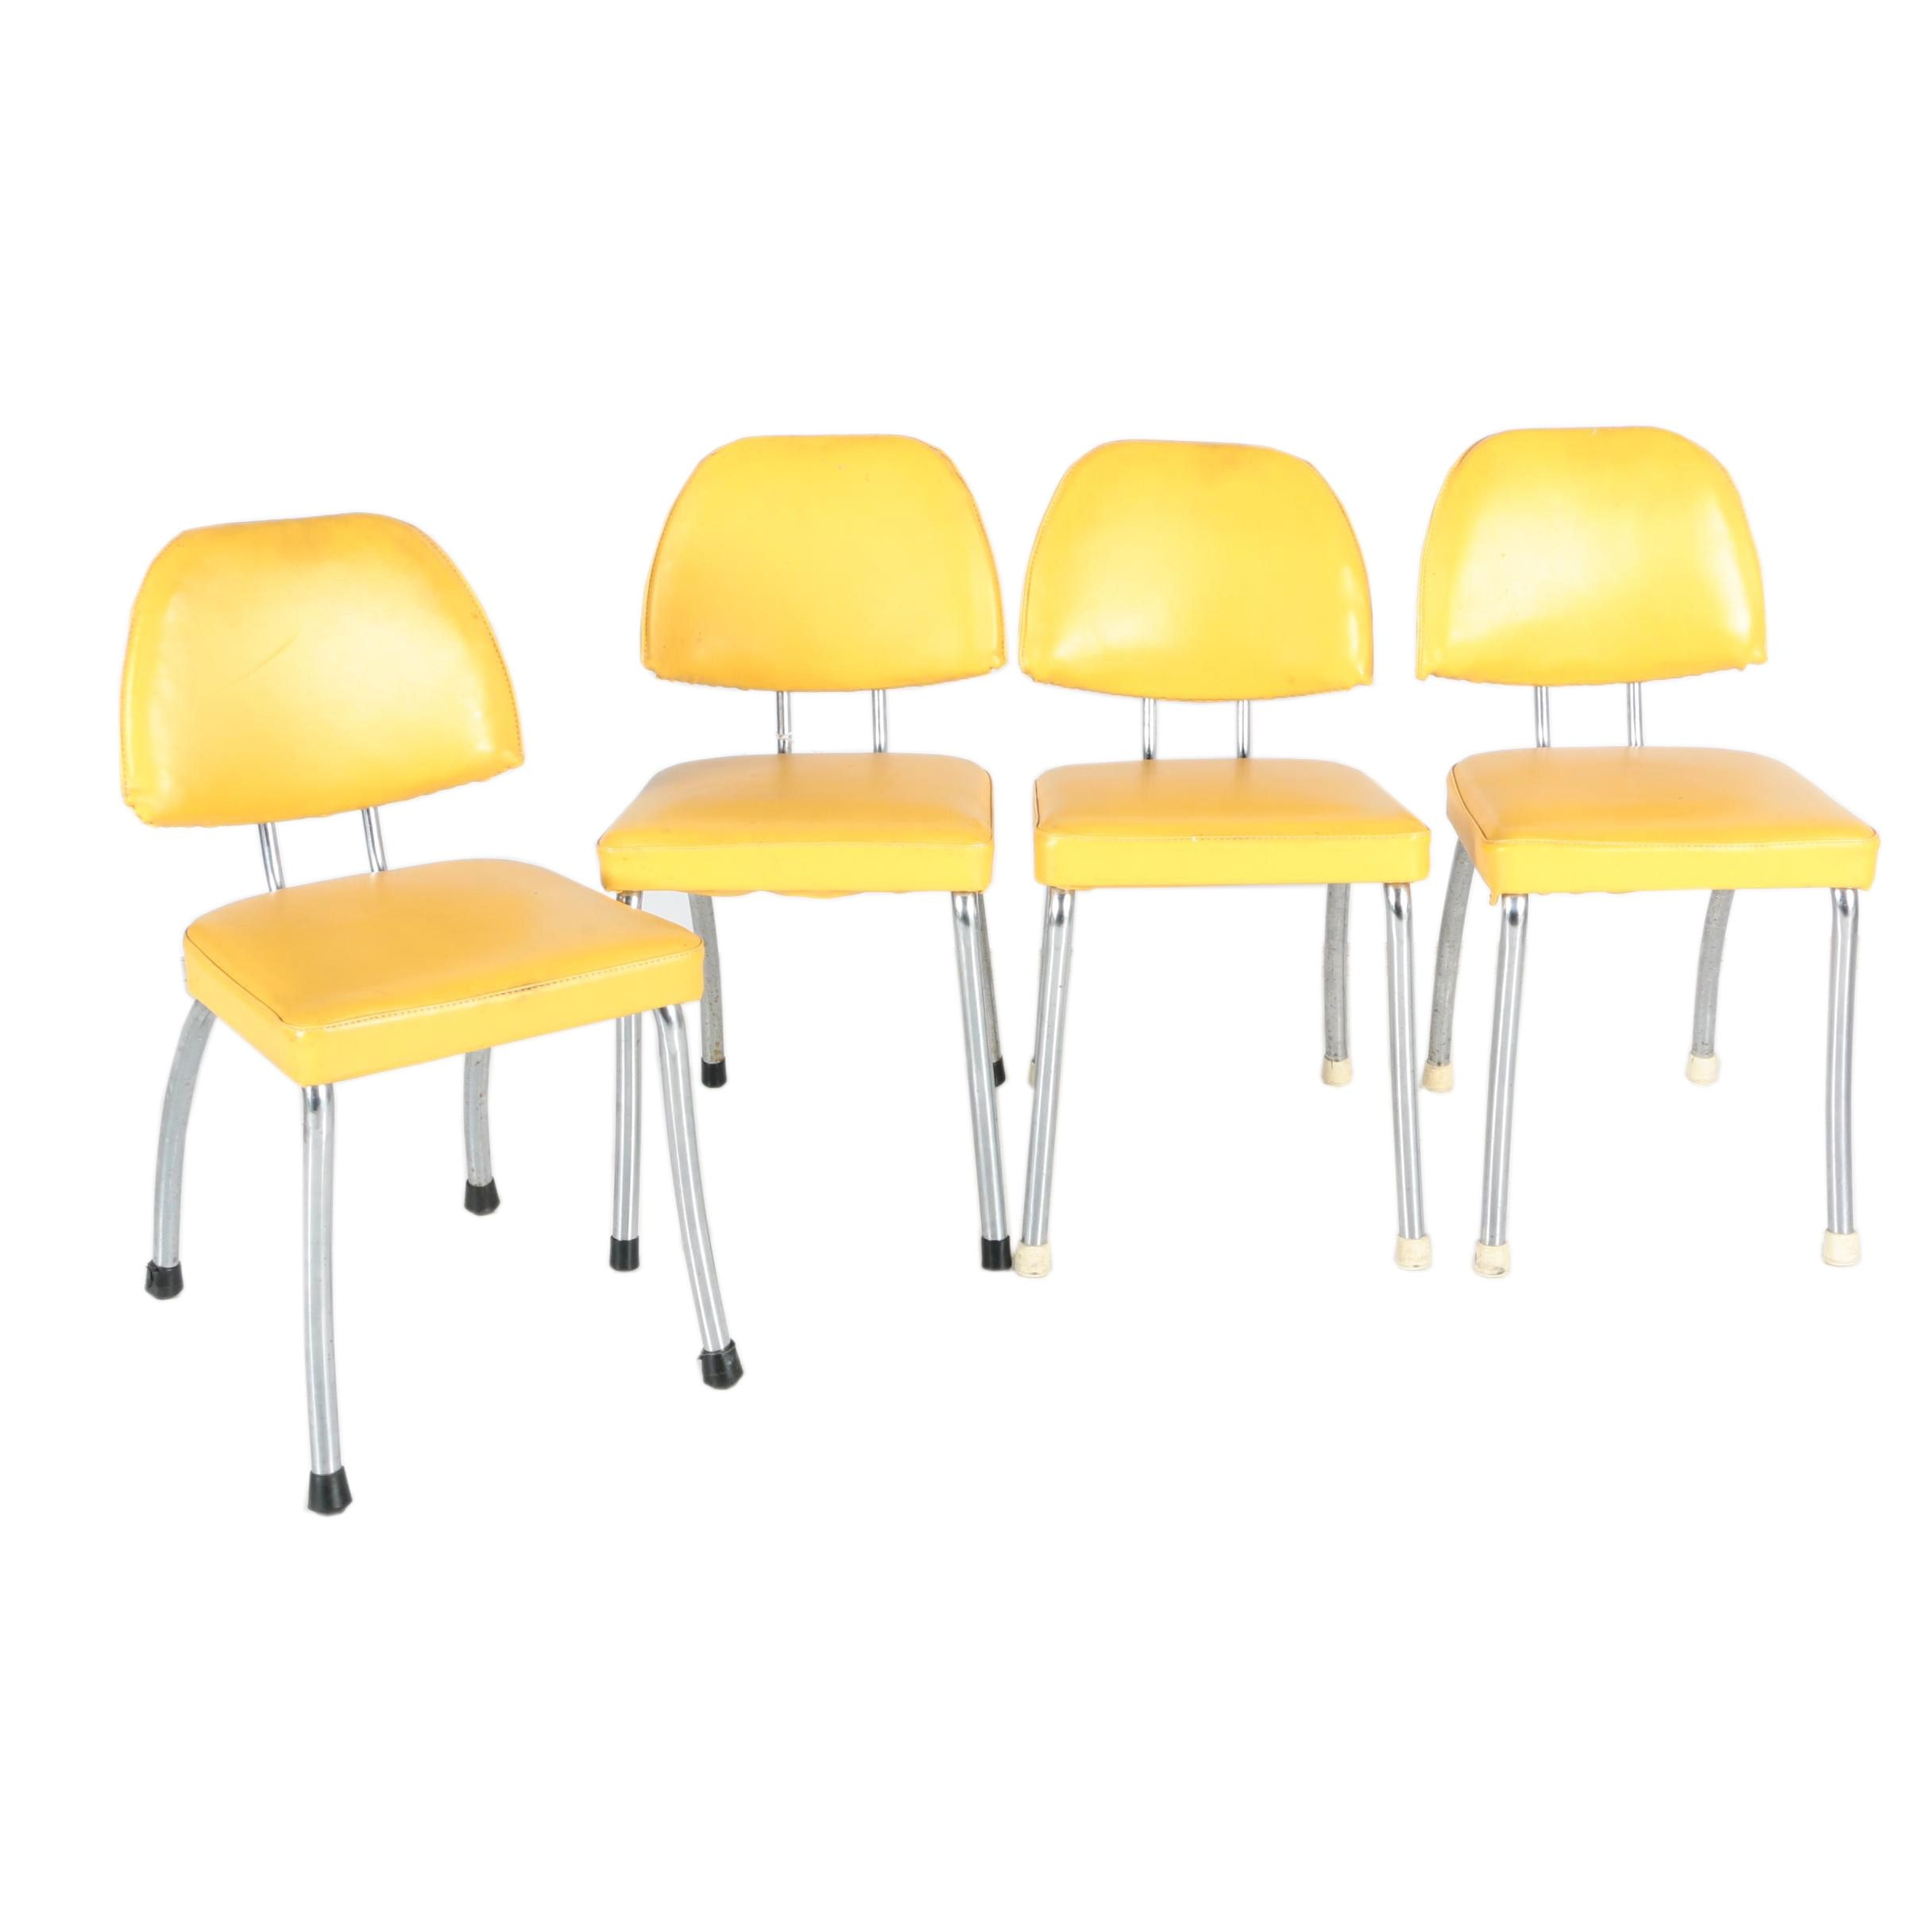 Set of Four Mid Century Modern Chrome and Yellow Chairs by Daystrom